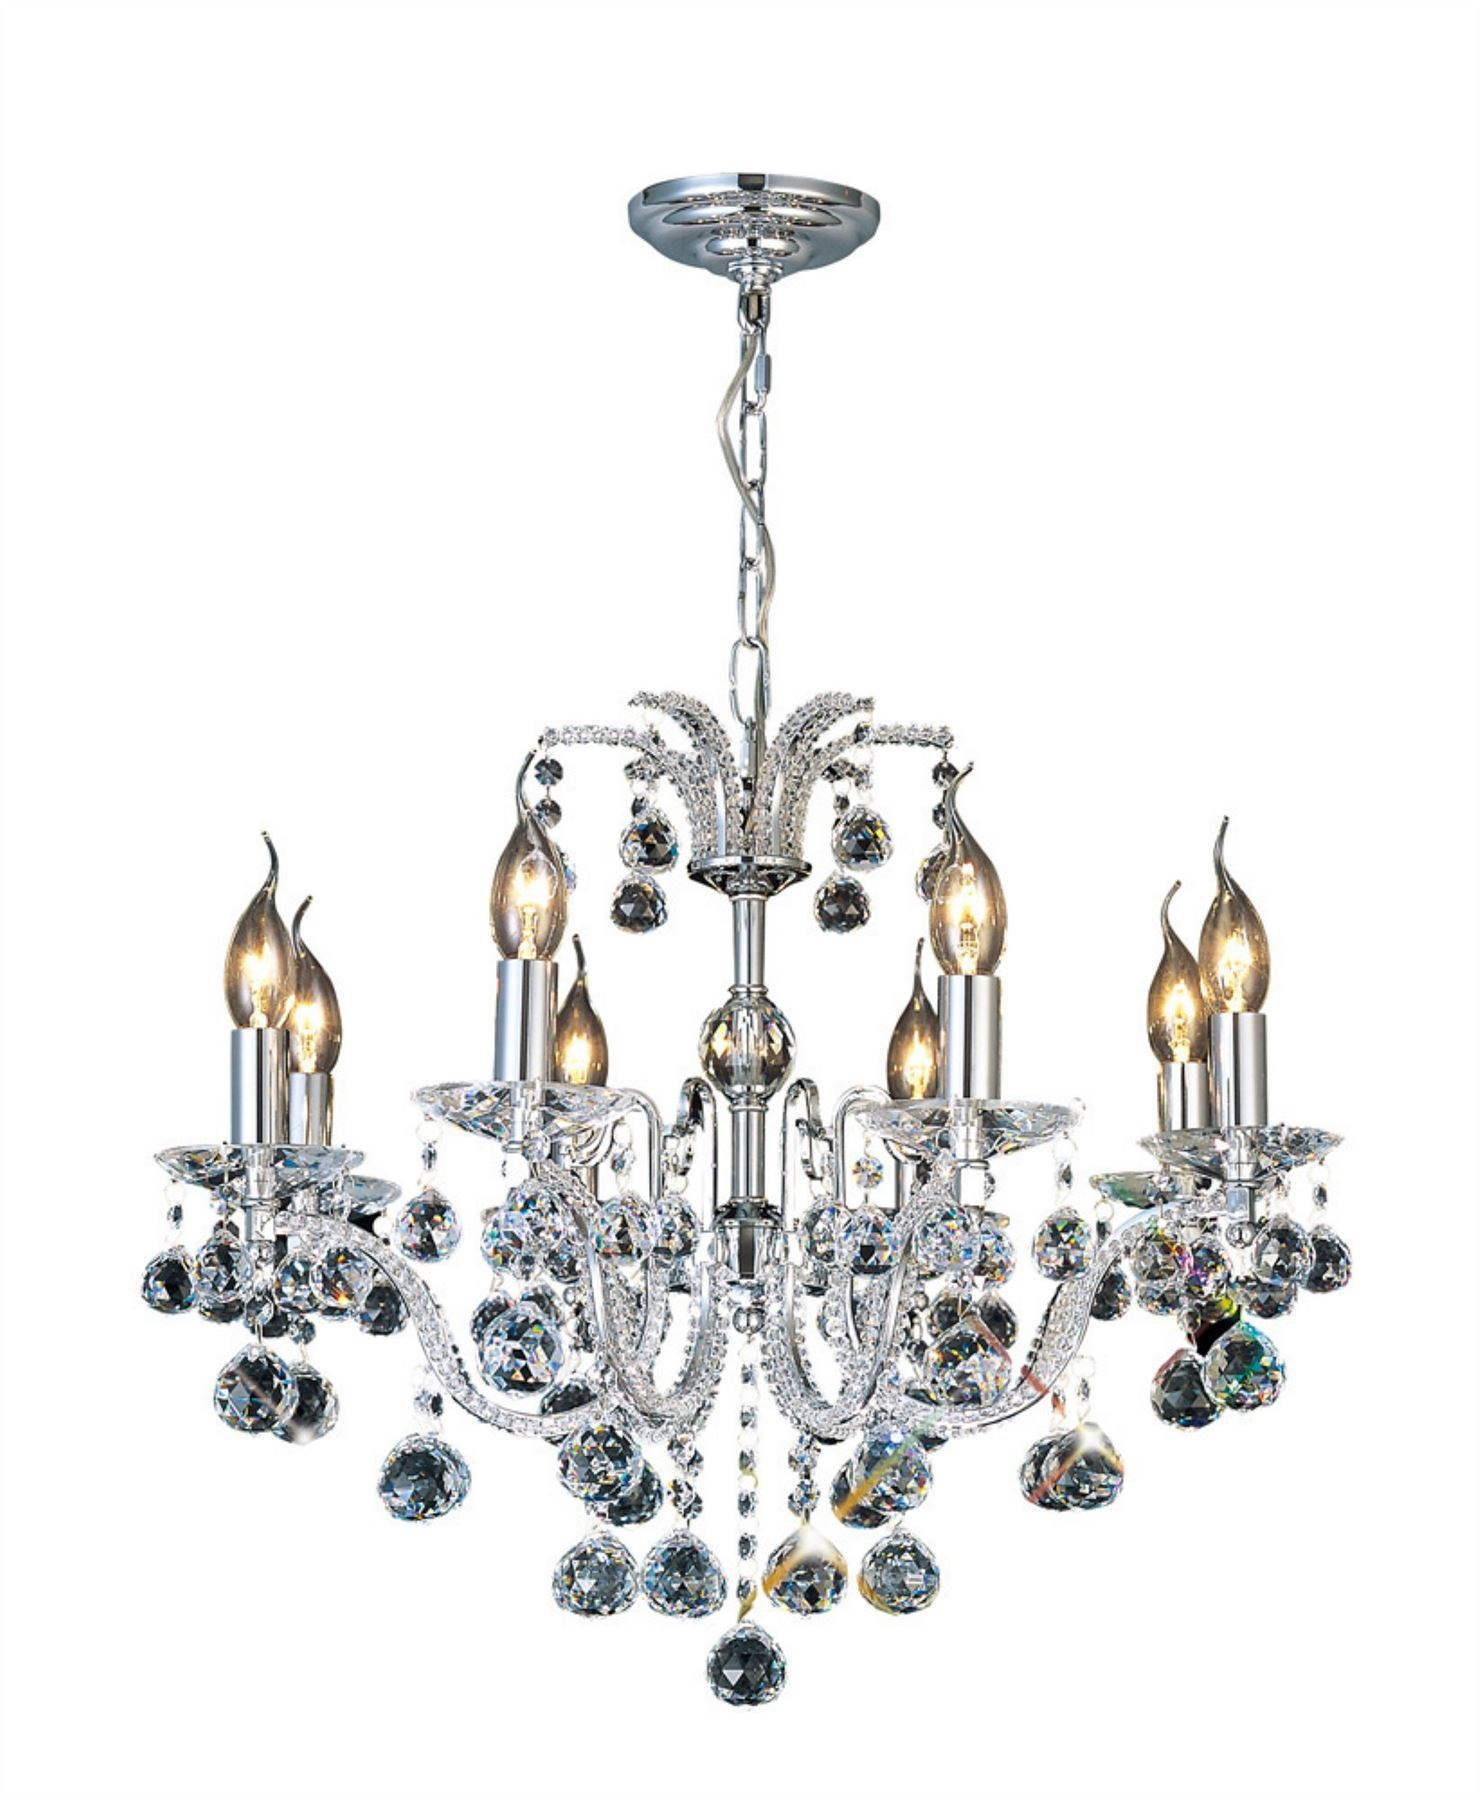 Details About Corona Ceiling 8 Light Polished Chrome/crystal – Diyas Intended For Corona 12 Light Sputnik Chandeliers (View 17 of 30)